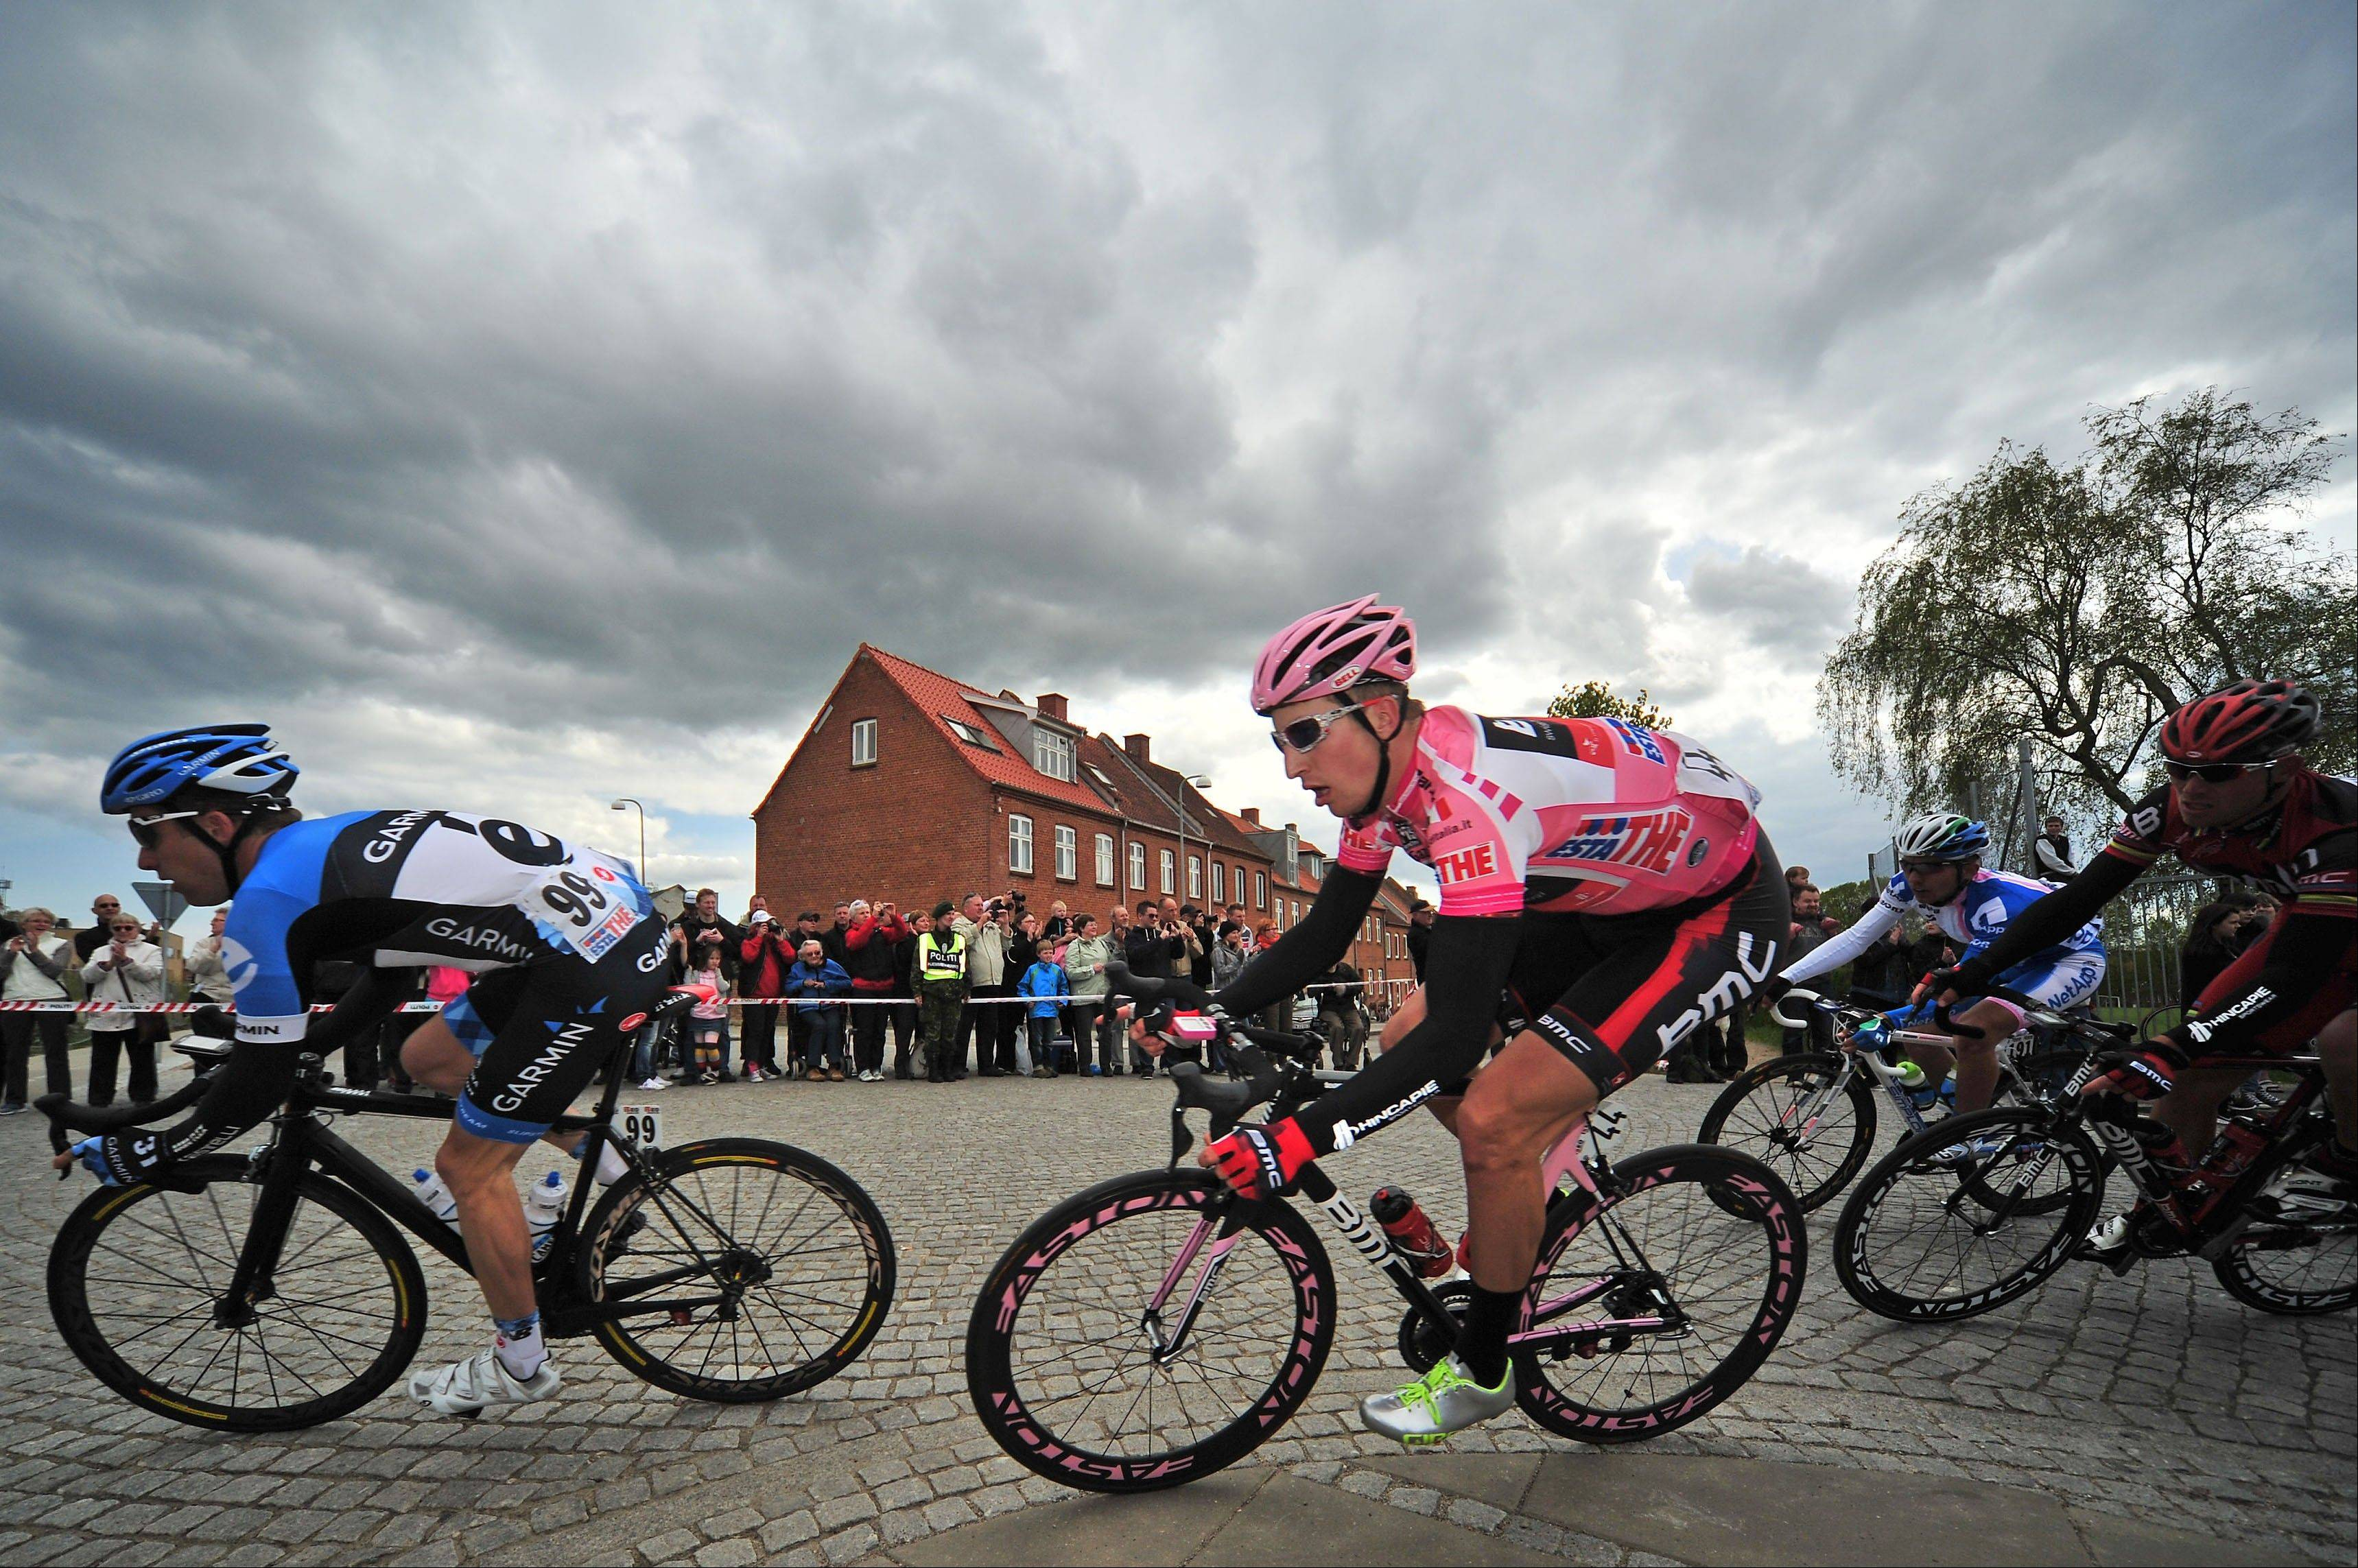 Taylor Phinney, second from left, wears the overall leader's pink jersey as he rides through a corner during the third stage of the Giro d'Italia on May 7.